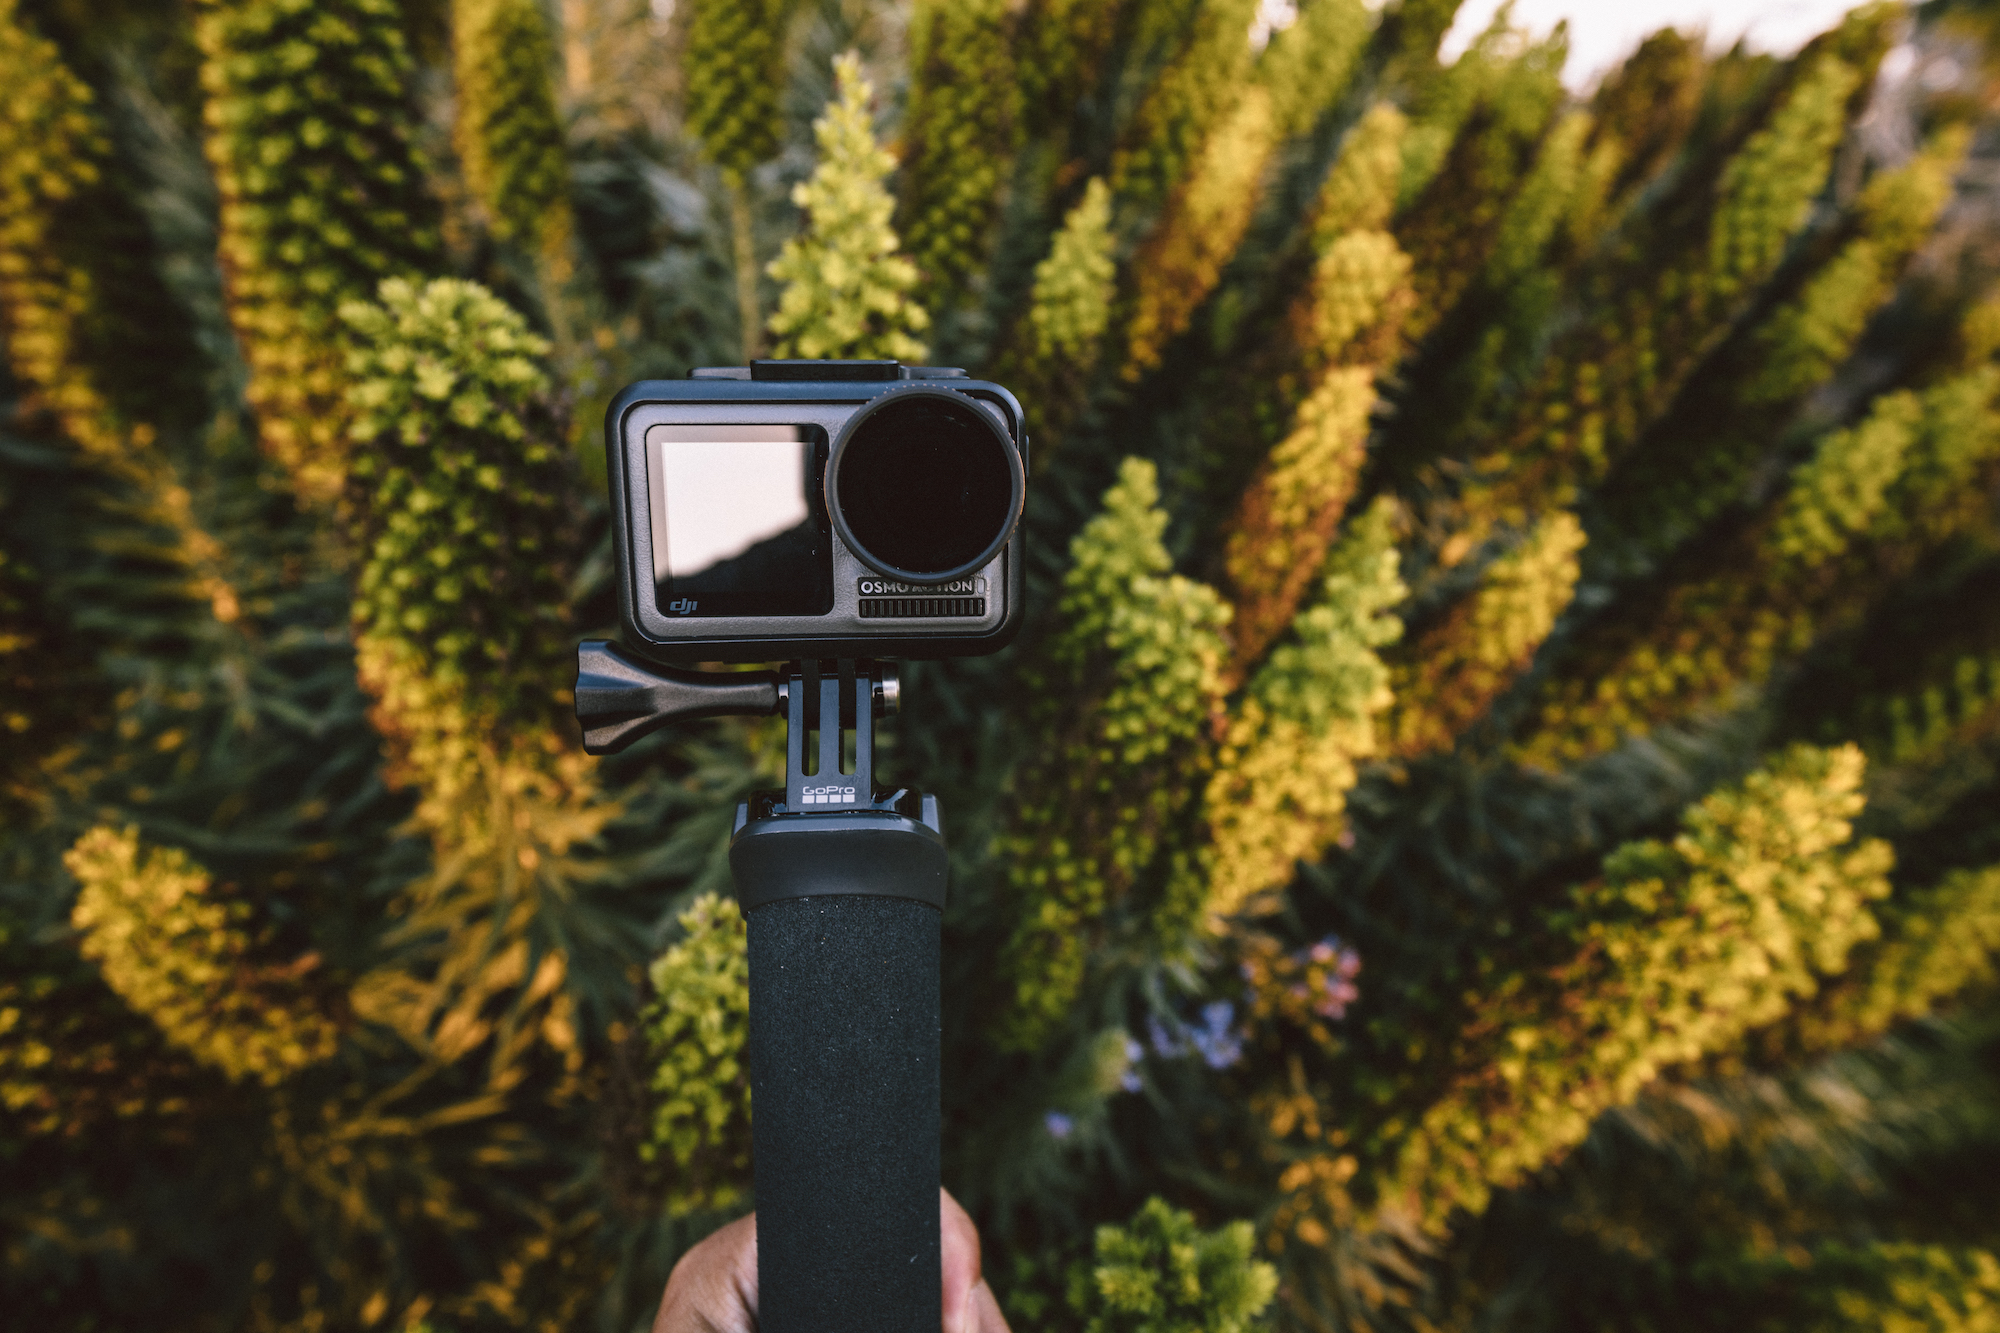 Osmo Action Cinematic Settings